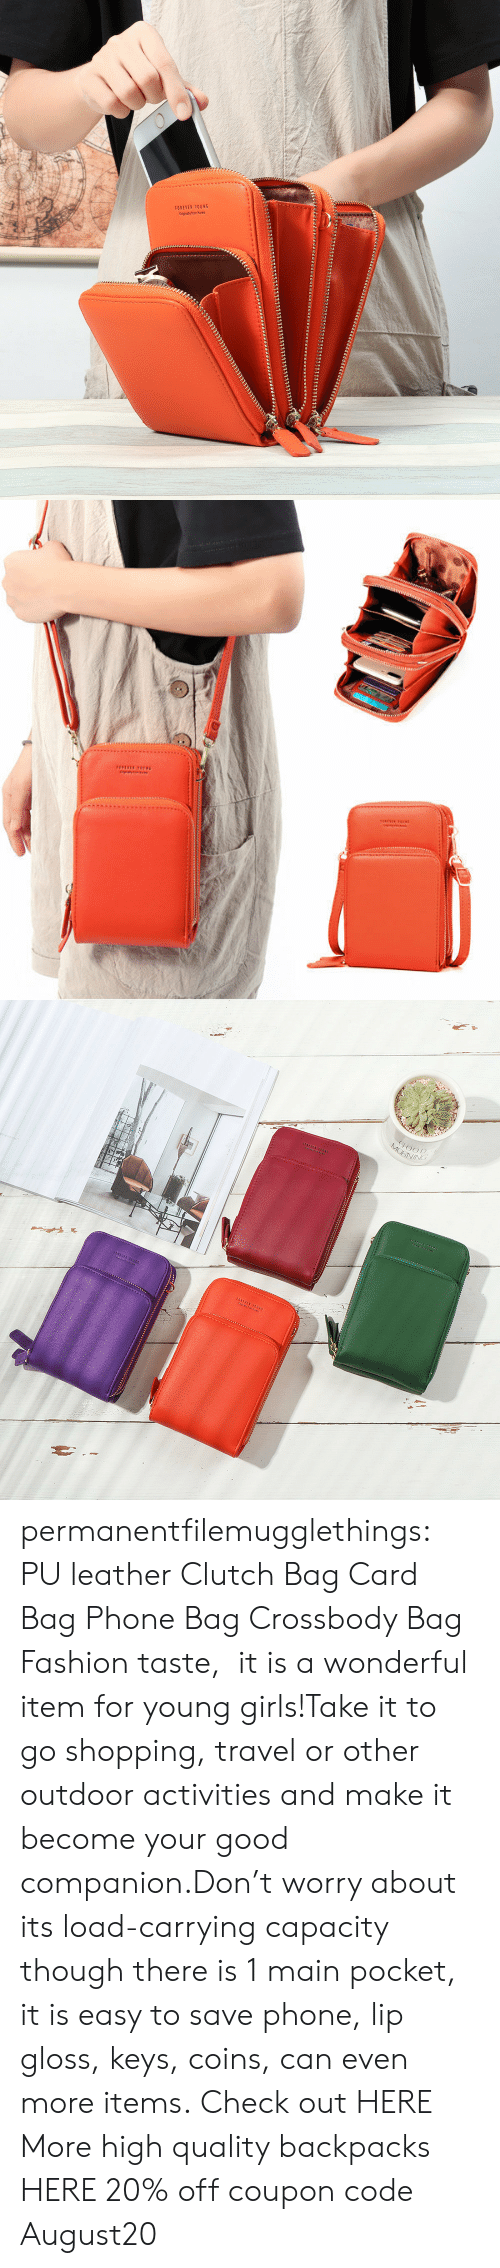 capacity: 1OREVER YOUN6  Orgnaly fom Kores   MOINING permanentfilemugglethings: PU leather Clutch Bag Card Bag Phone Bag Crossbody Bag Fashion taste, it is a wonderful item for young girls!Take it to go shopping, travel or other outdoor activities and make it become your good companion.Don't worry about its load-carrying capacity though there is 1 main pocket, it is easy to save phone, lip gloss, keys, coins, can even more items. Check out HERE More high quality backpacks HERE  20% off coupon code:August20